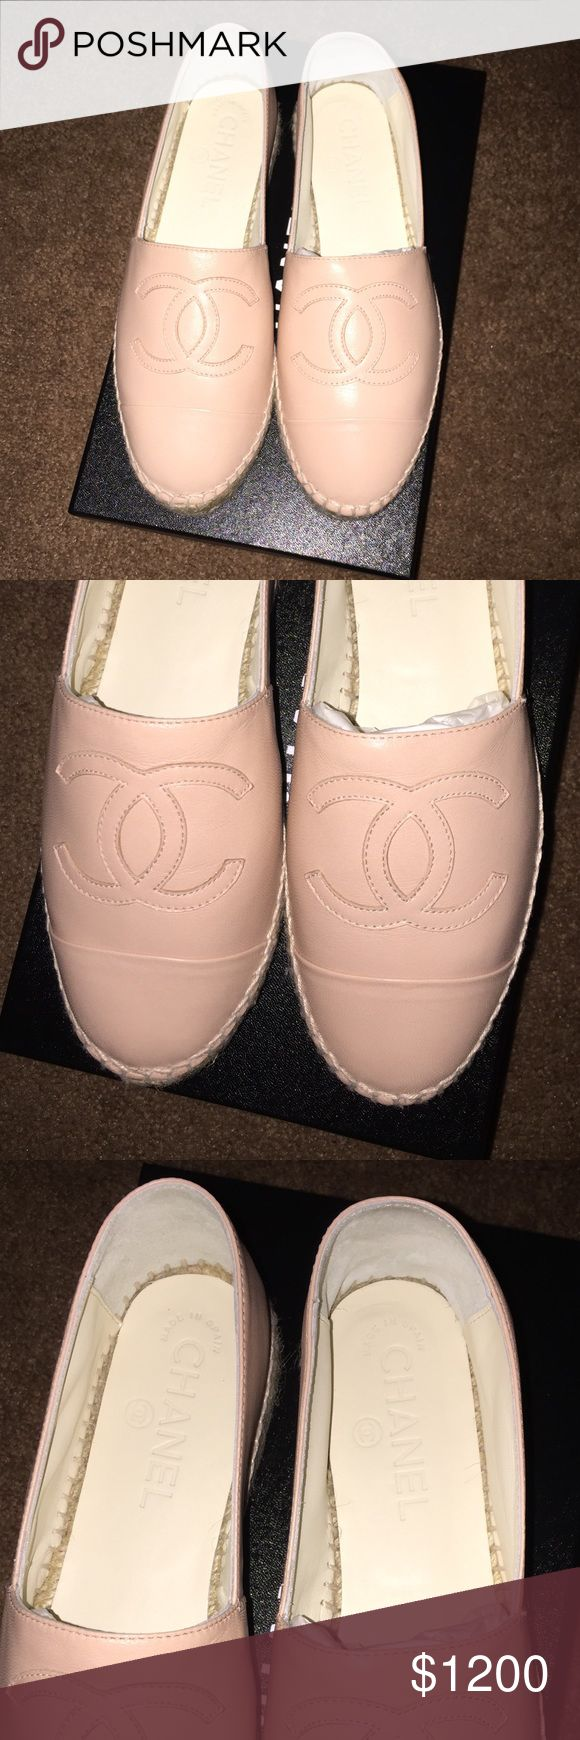 Brand New Chanel Espadrilles Sz 6 New blush color sold out everywhere!! Sz 6.. price is firm. No trades. Comes with copy of original receipt. Purchased from Saks in SF. CHANEL Shoes